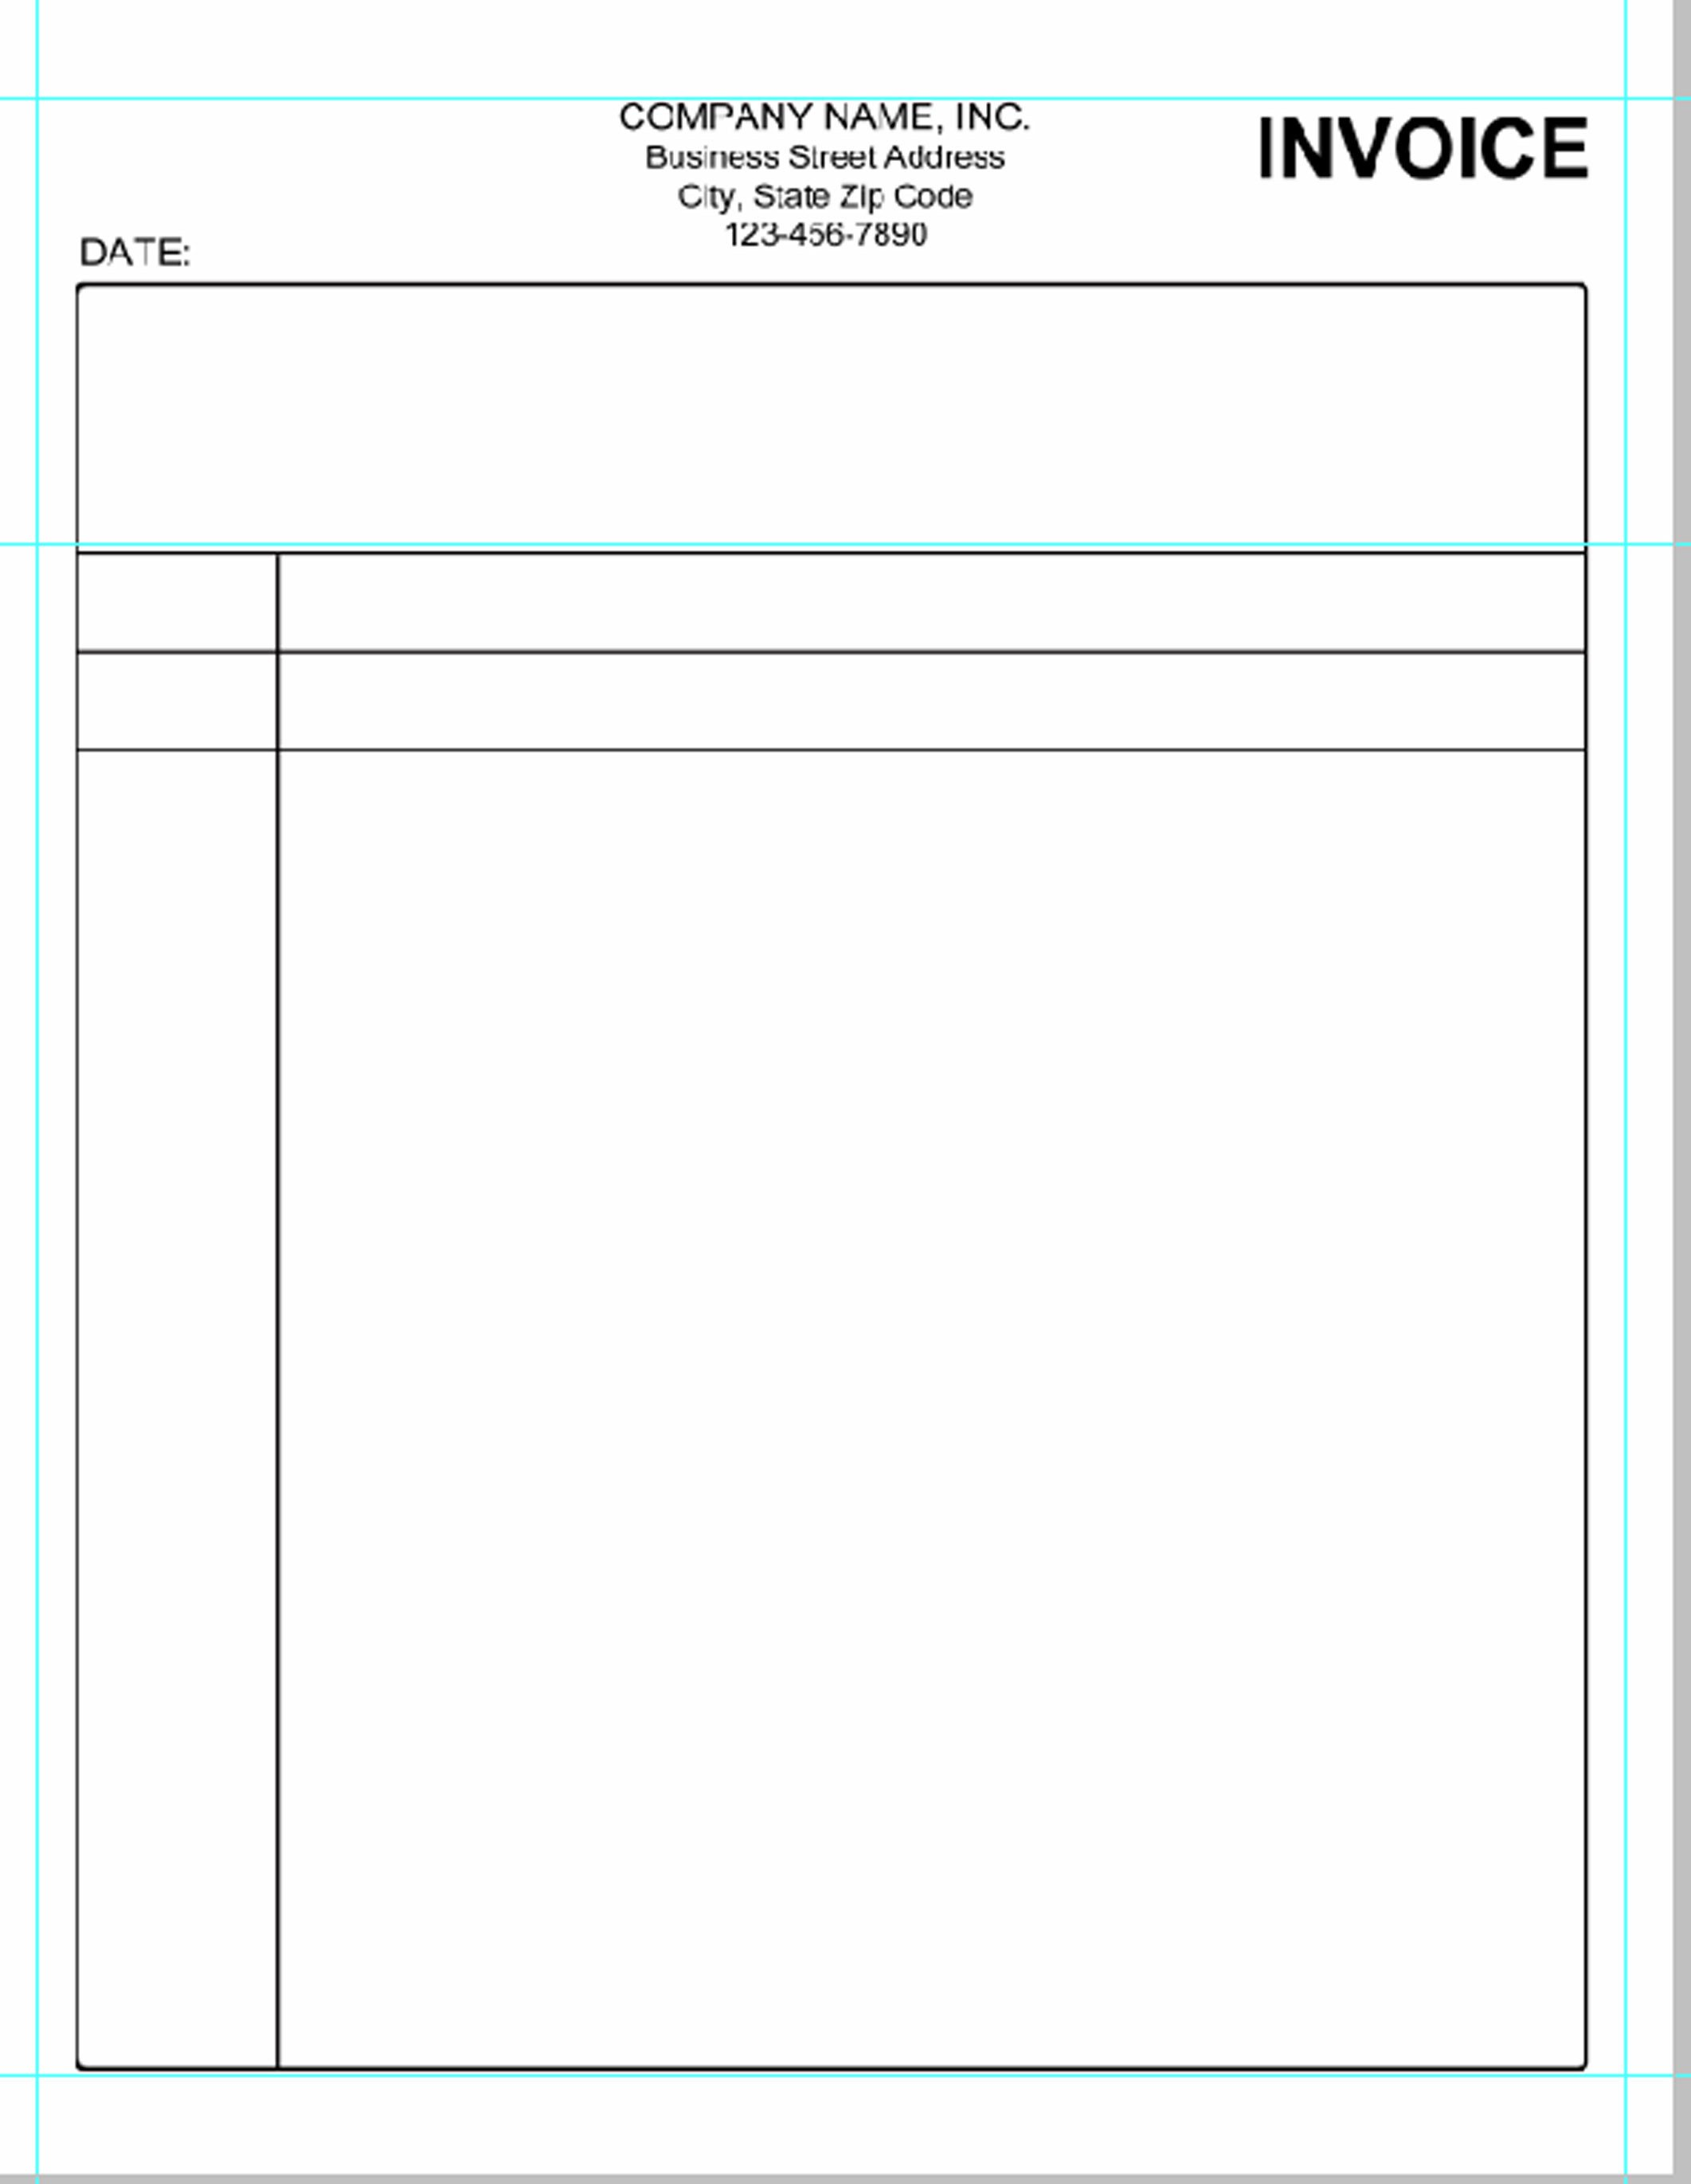 Blank Invoice Template Pdf Simple Invoice Template Pdf